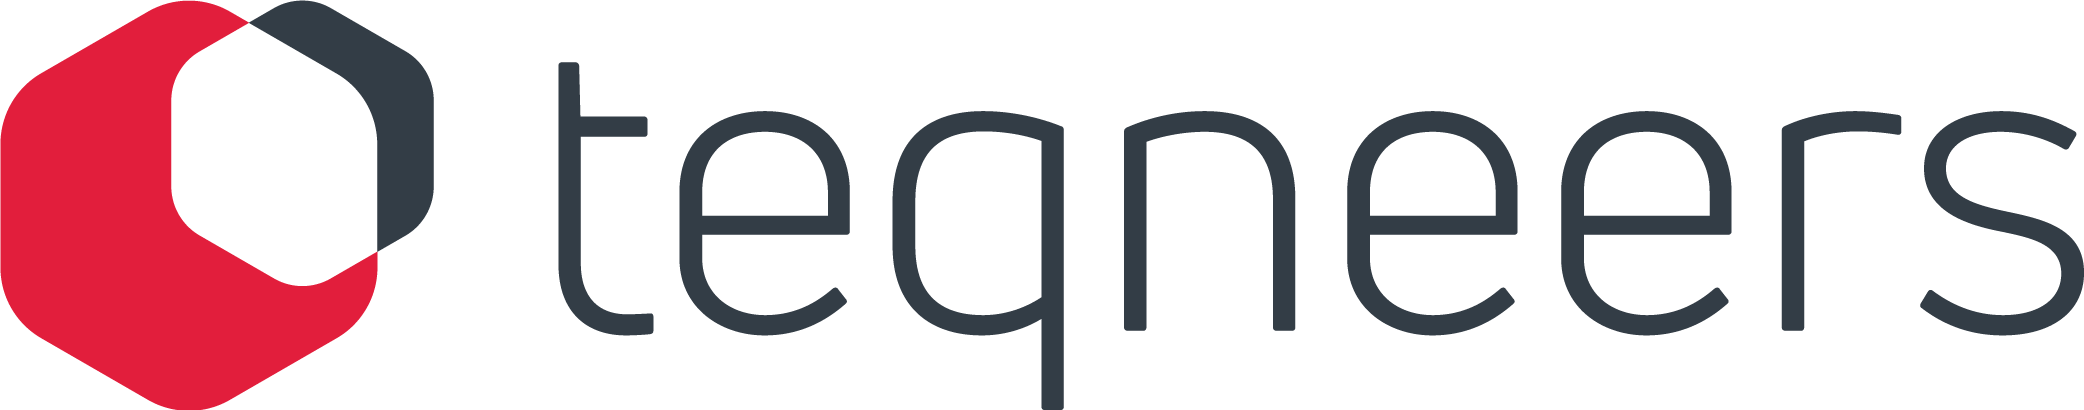 TEQneers GmbH & Co. KG